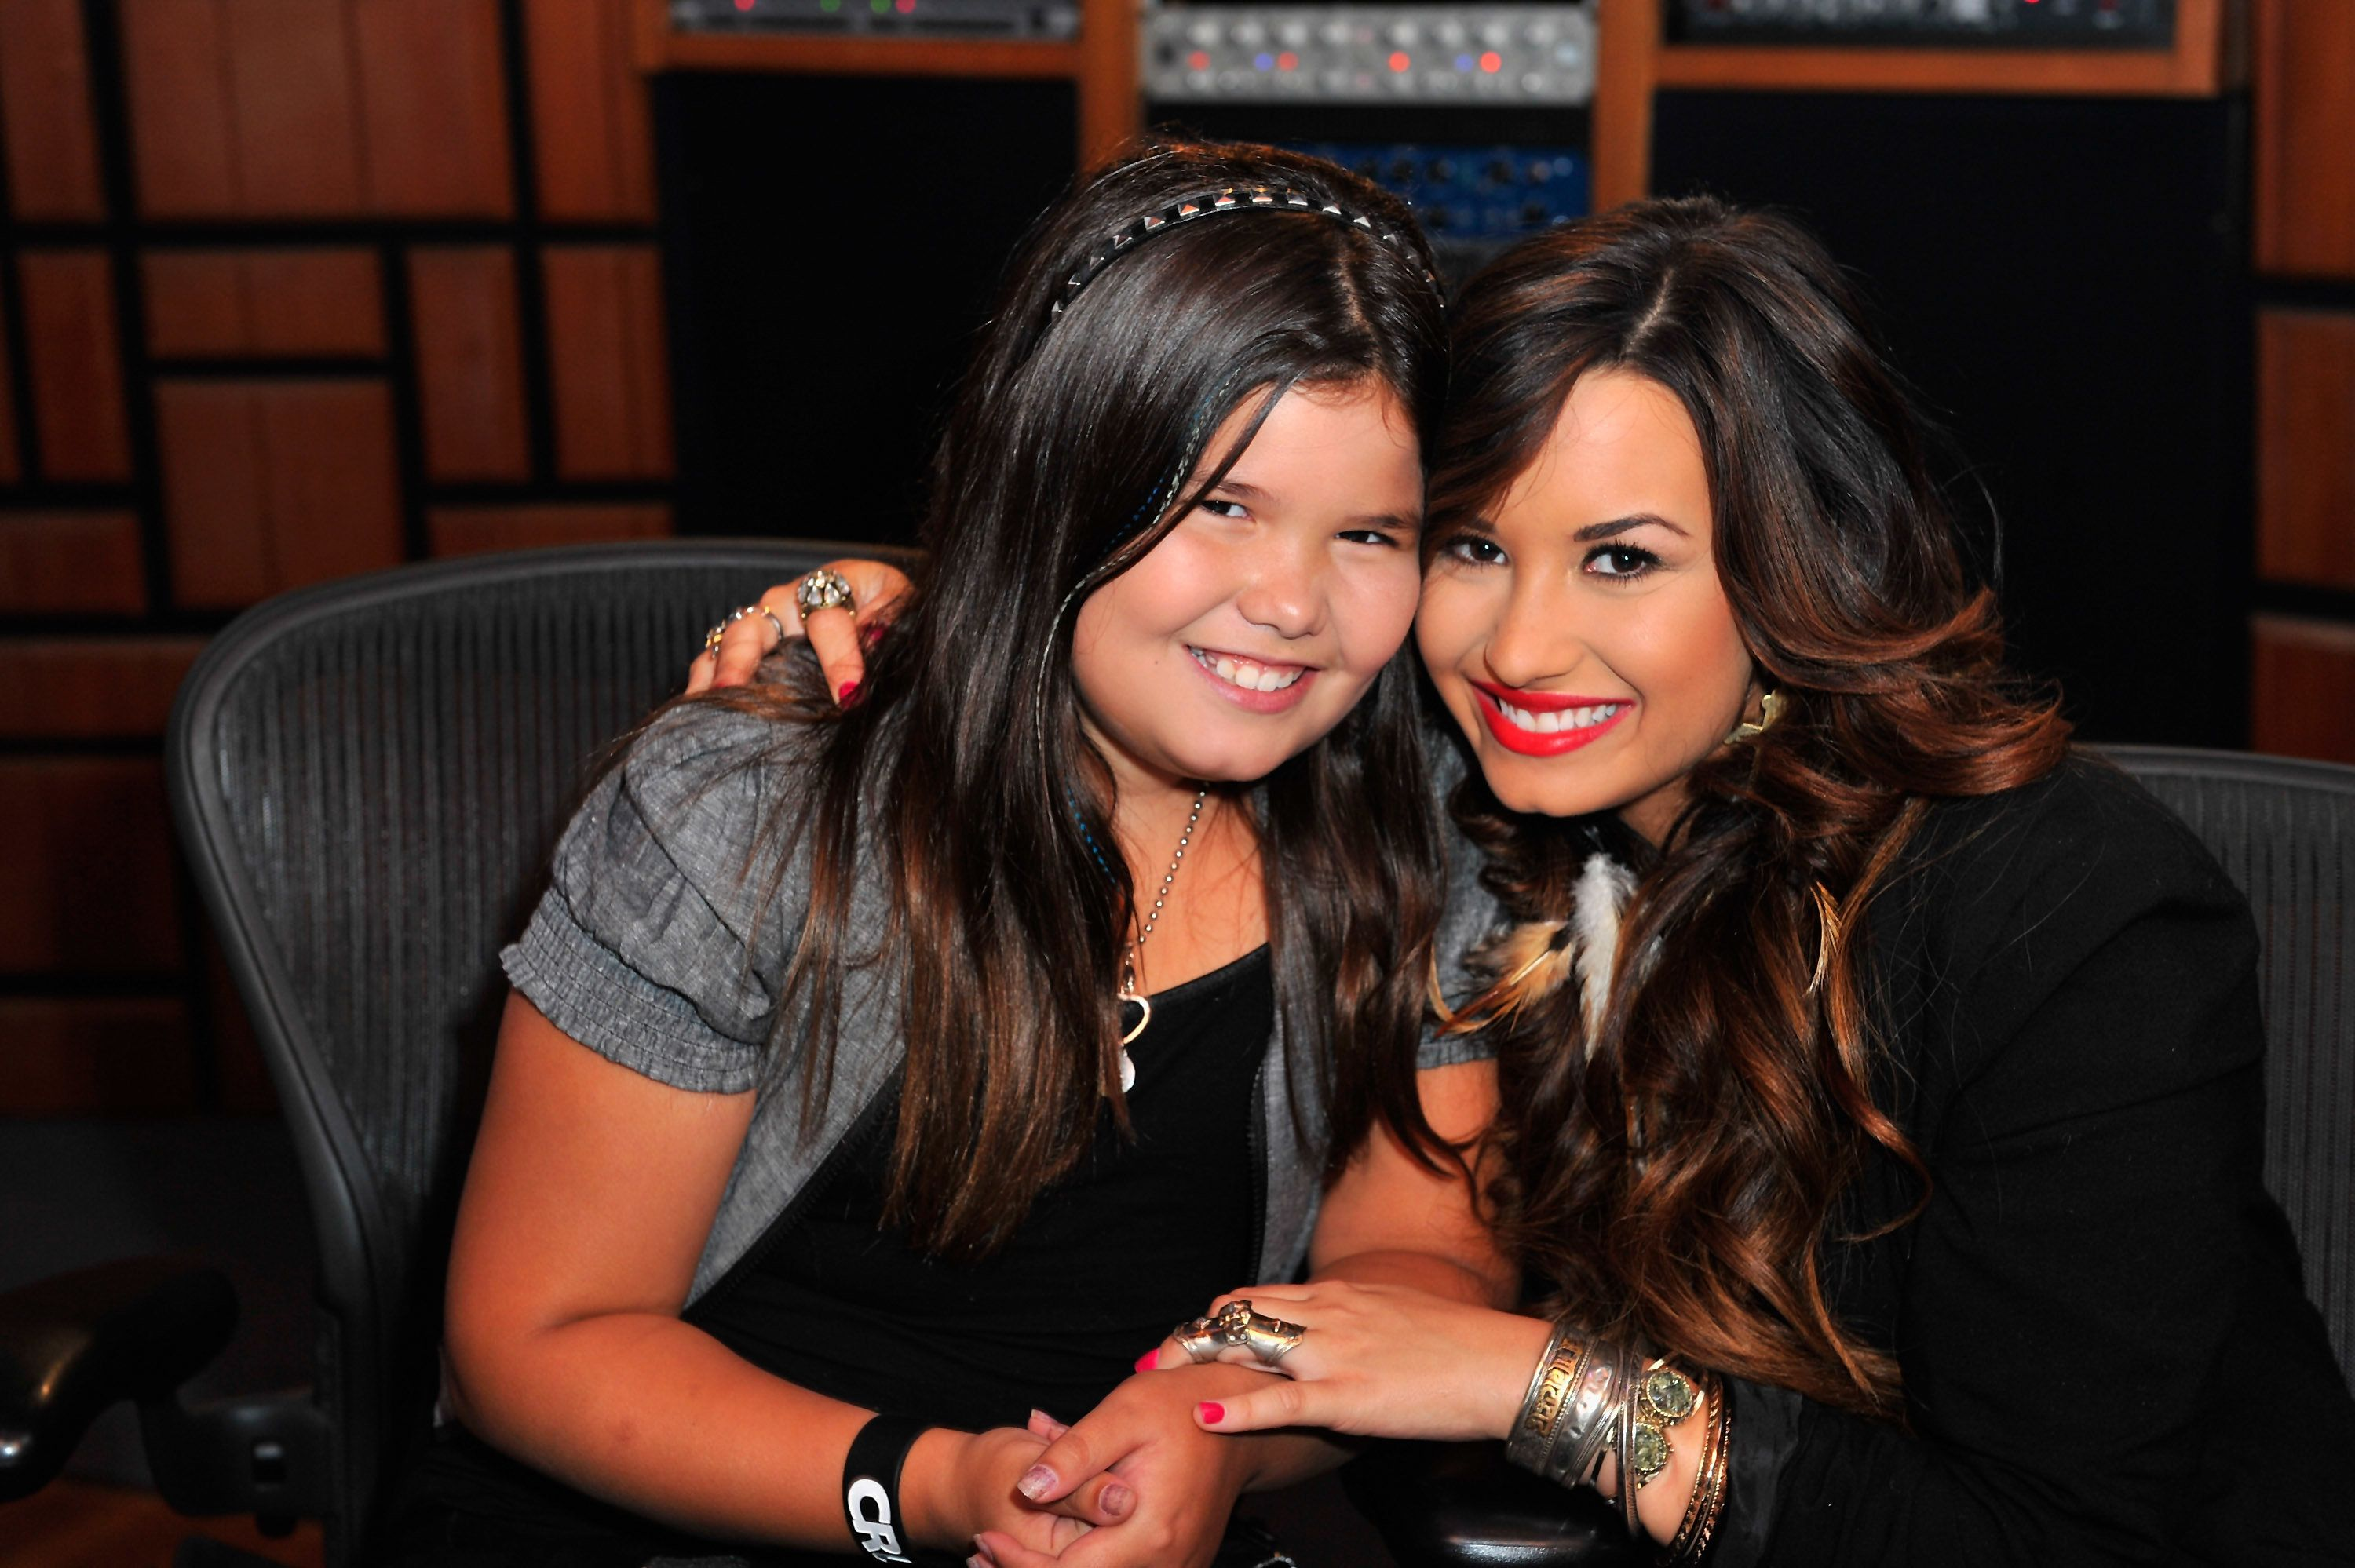 HOLLYWOOD, CA - JULY 21:  Actress/singer Demi Lovato (R) and sister actress Madison De La Garza attend a Live Chat at Cambio Studios on July 21, 2011 in Hollywood, California.  (Photo by Alberto E. Rodriguez/Getty Images)